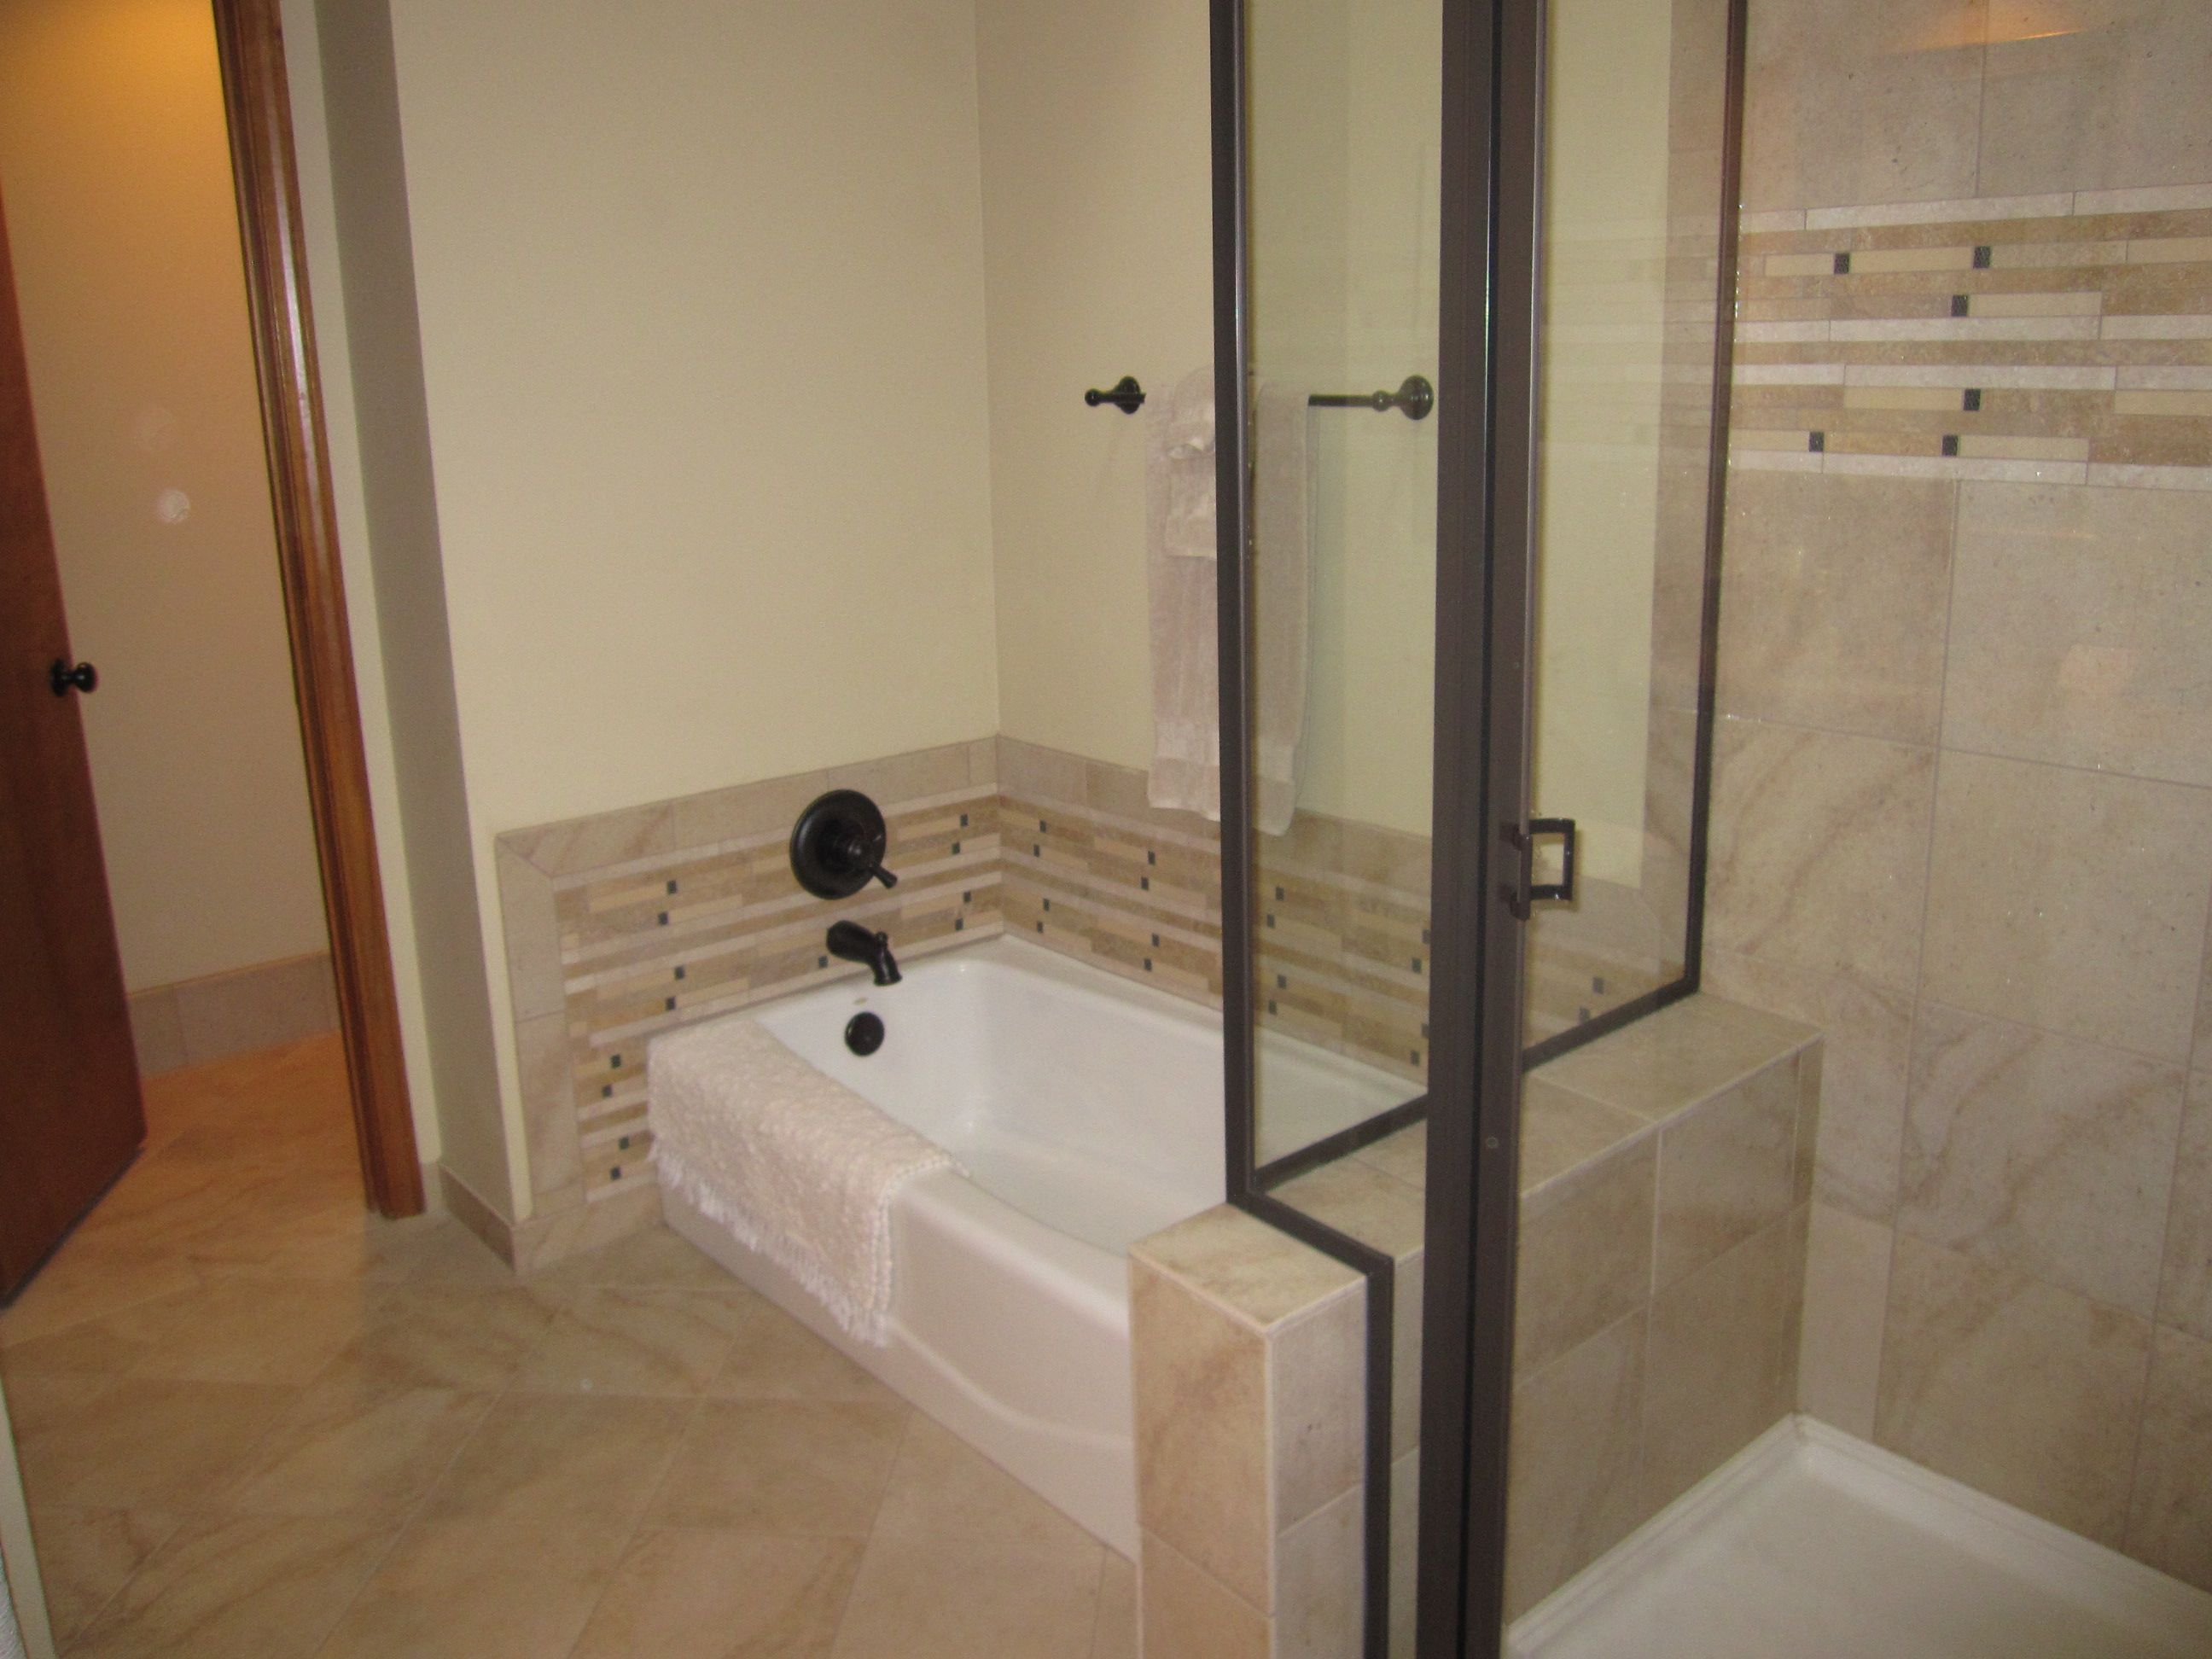 Bathtub shower doors bronze - Garden Tub With Matching Inlay To Shower With Custom Glass Doors And Tile Bench Oil